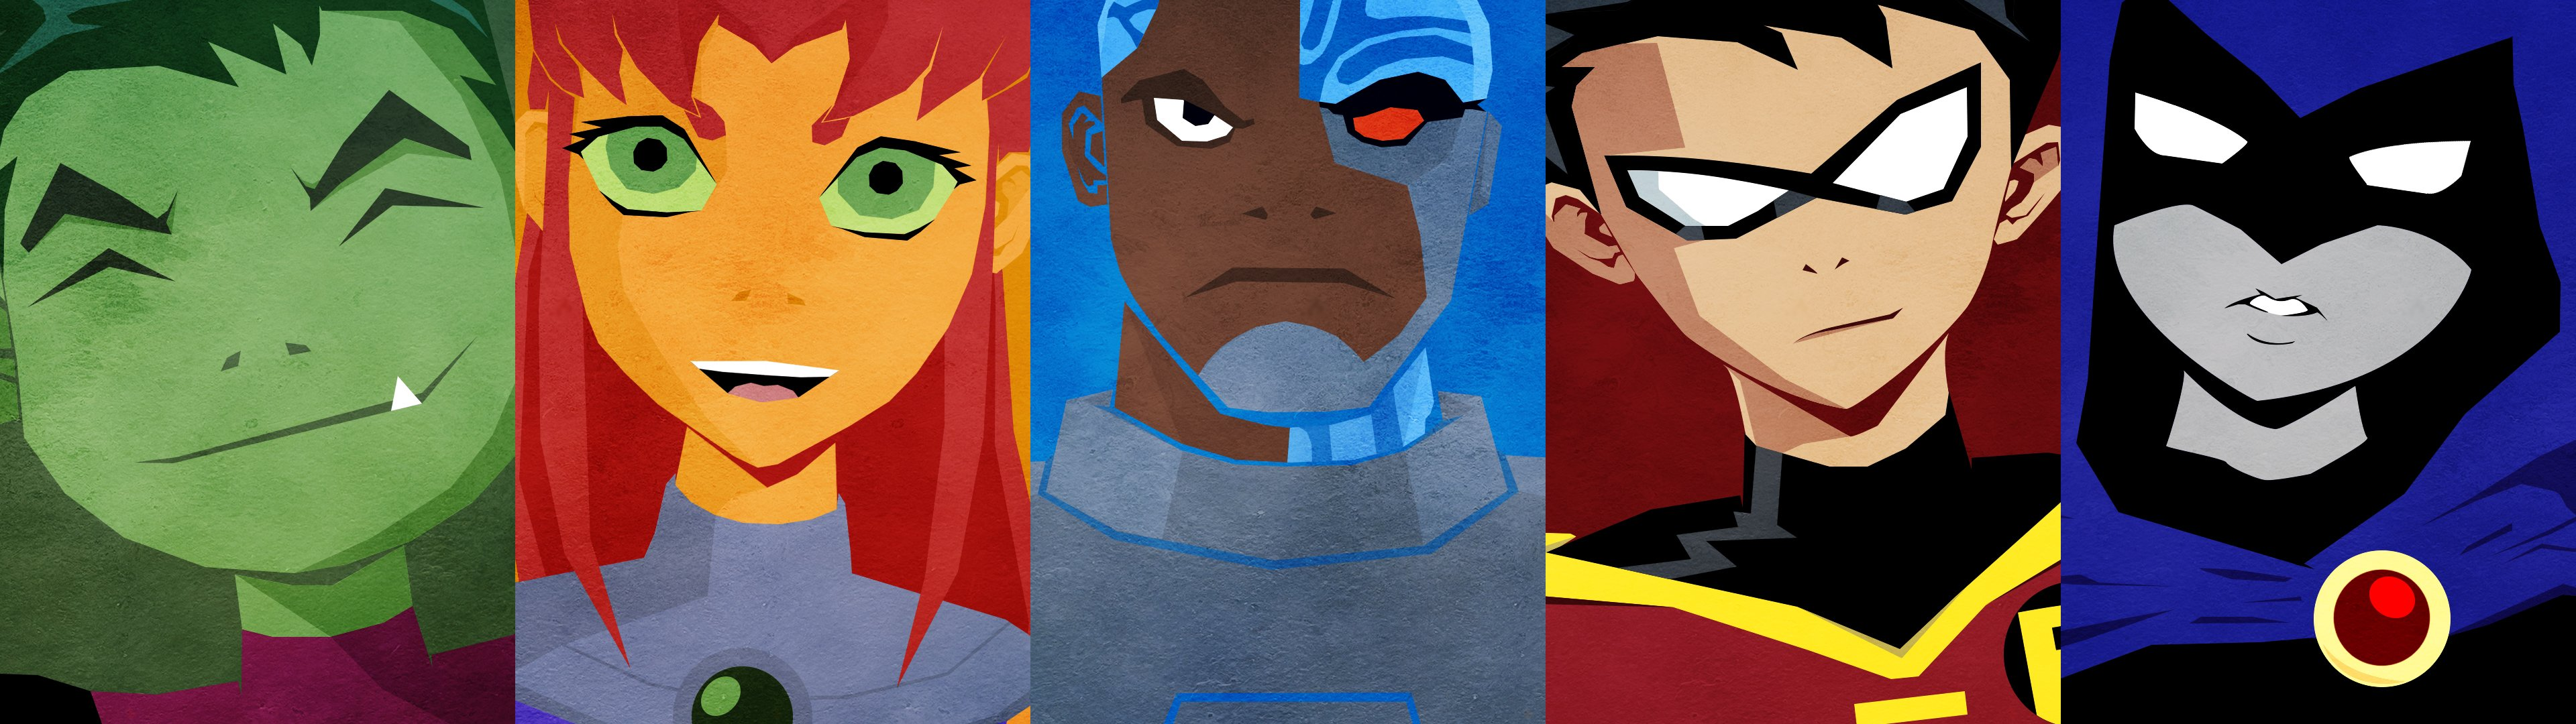 Teen Titans Screensaver - Thousands of Free Screensavers